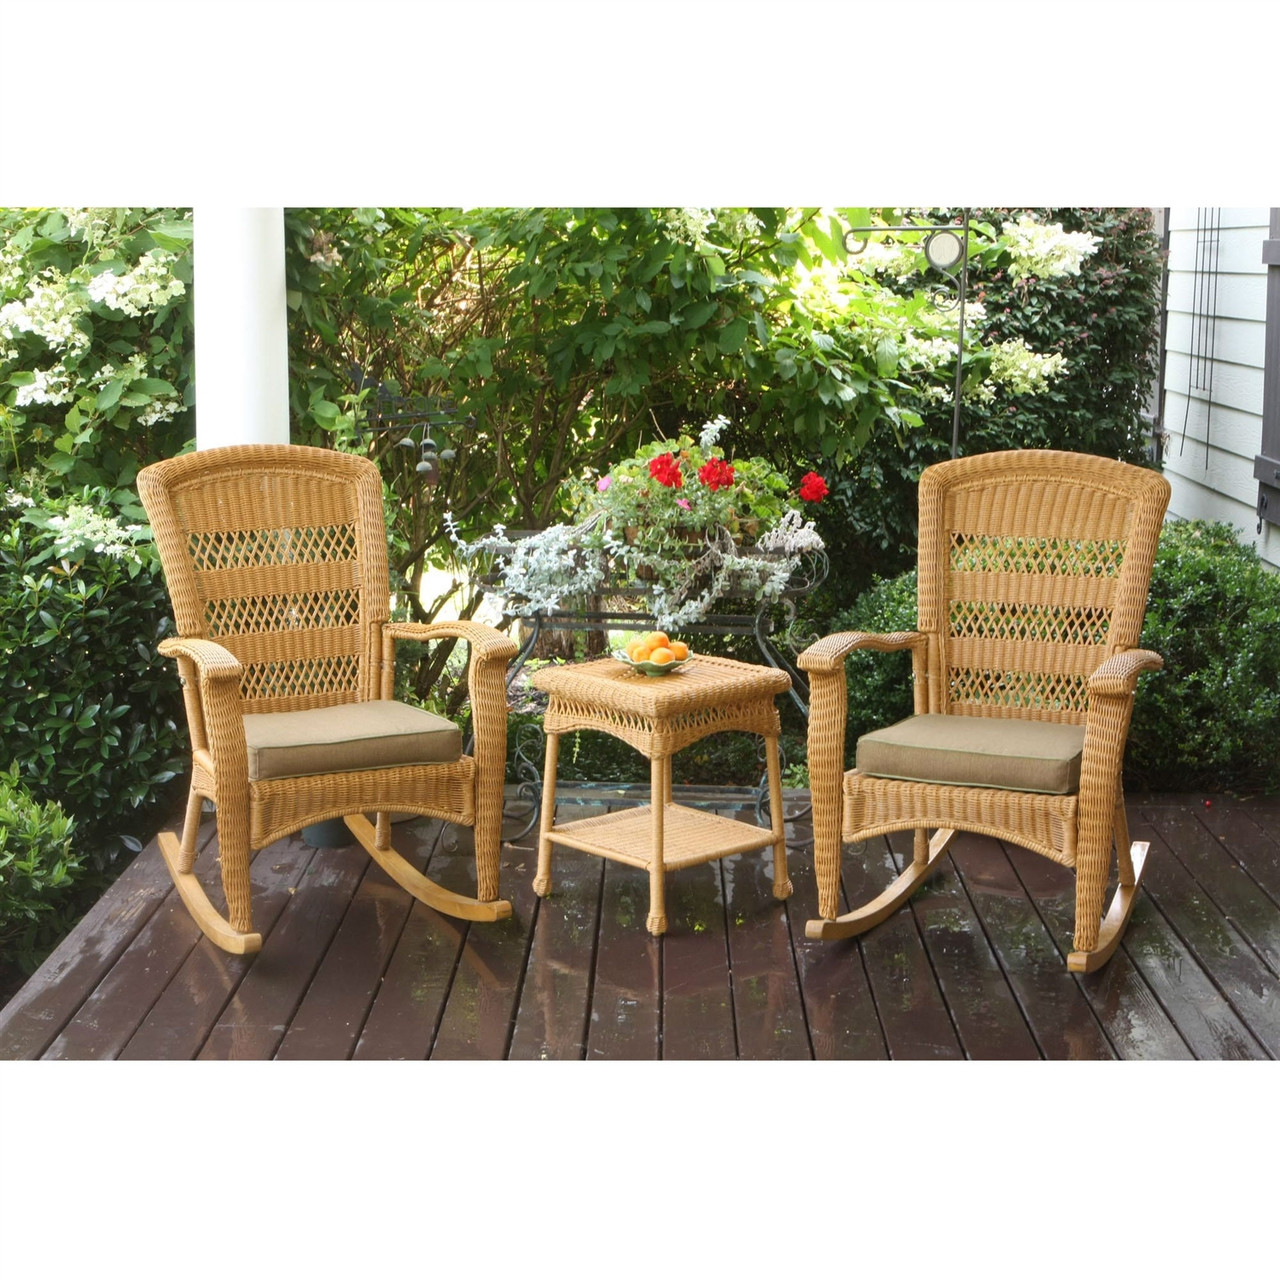 Big W Outdoor Table And Chairs 3pc Outdoor Rocker Set 2 Amber Wicker Resin Rocking